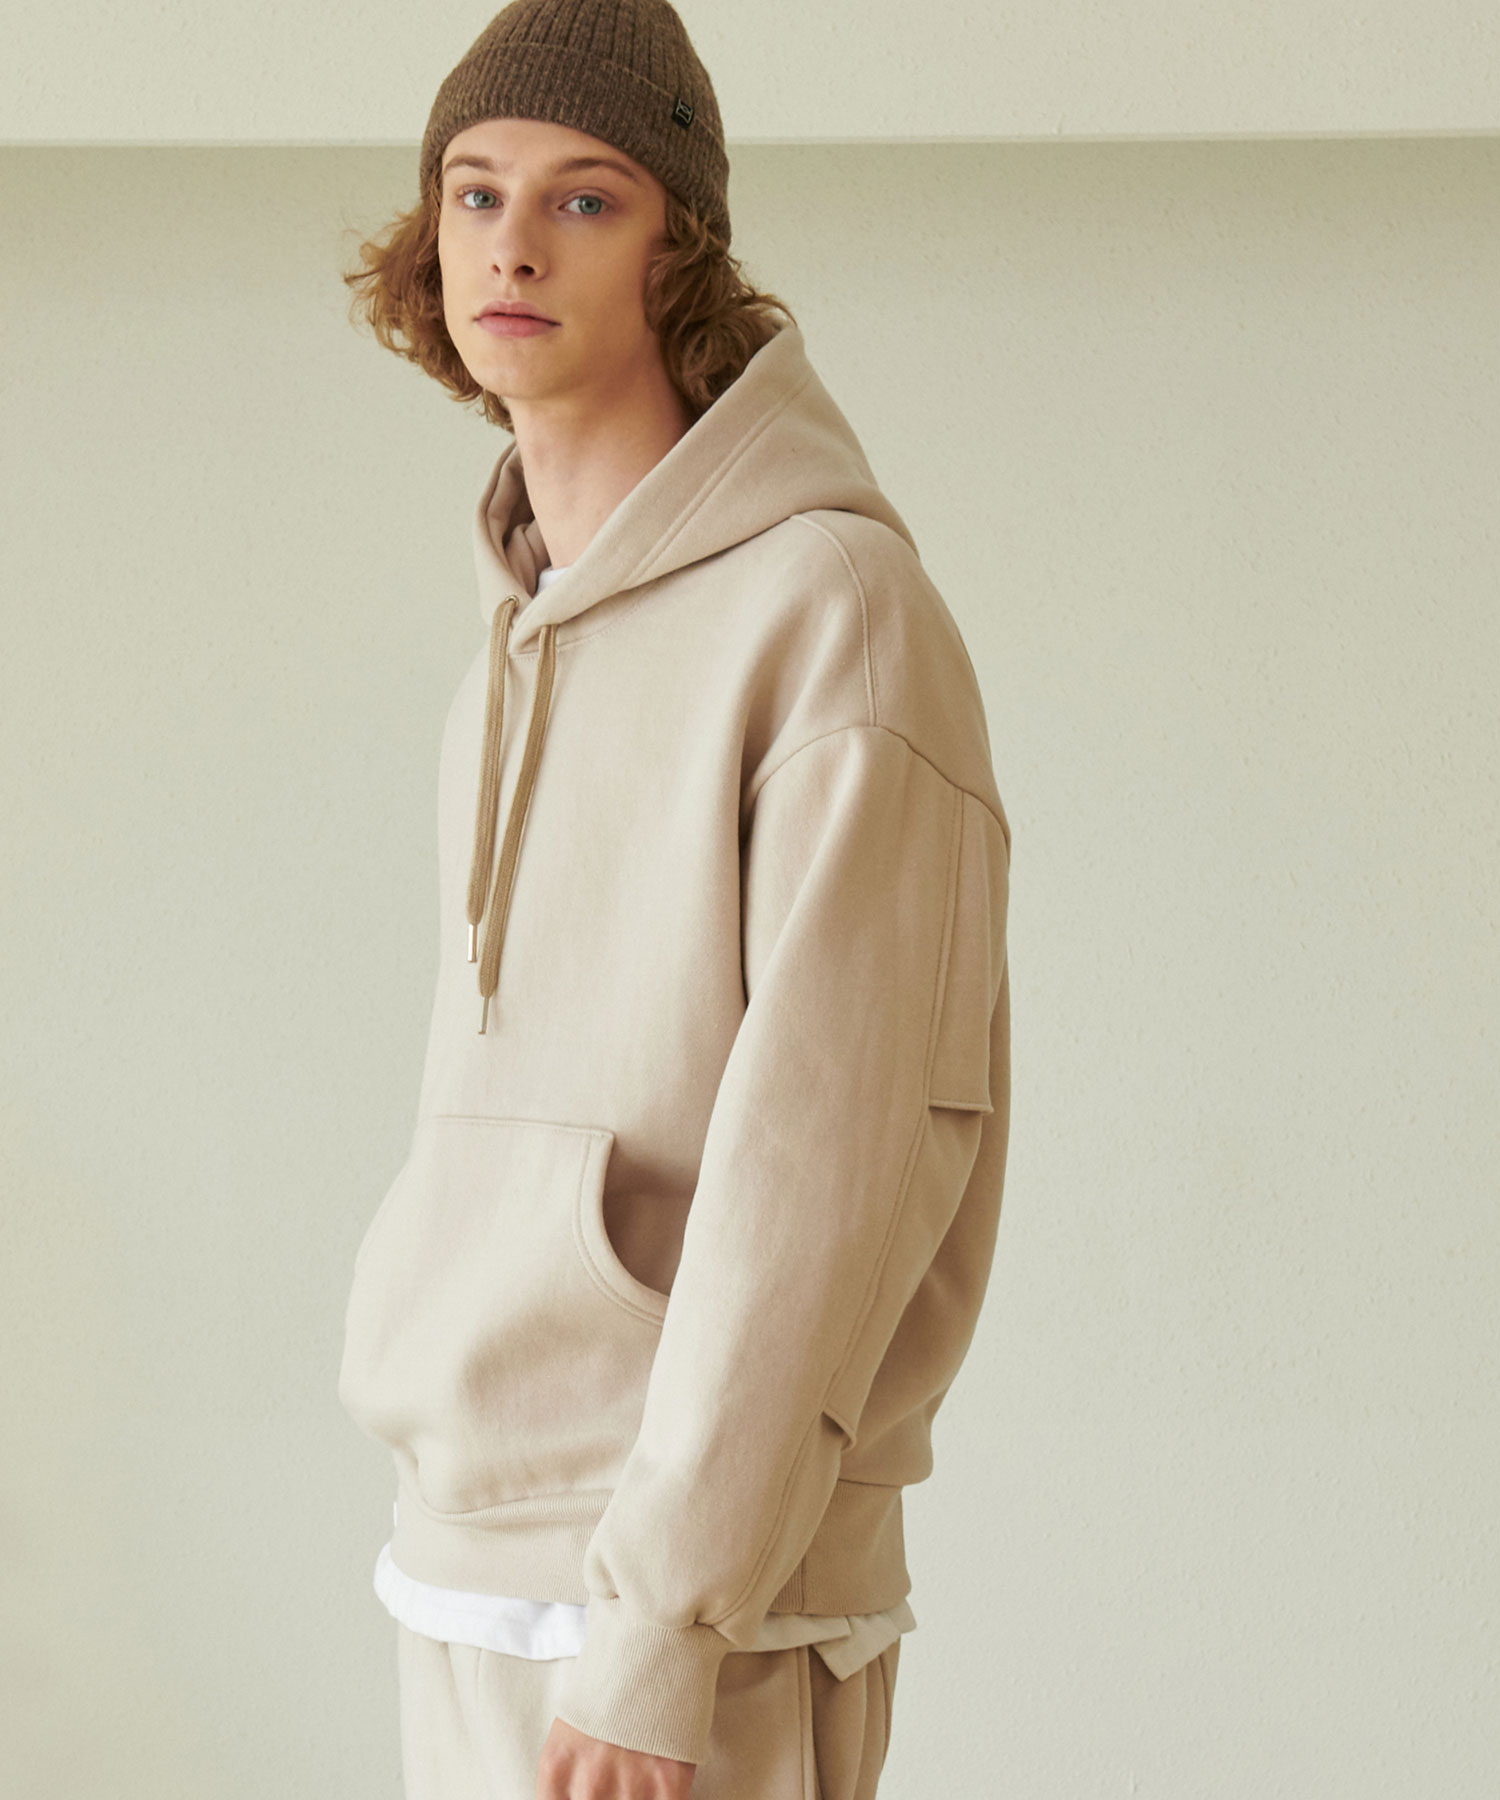 TA-131 BP-ELBOW HOODY_LB